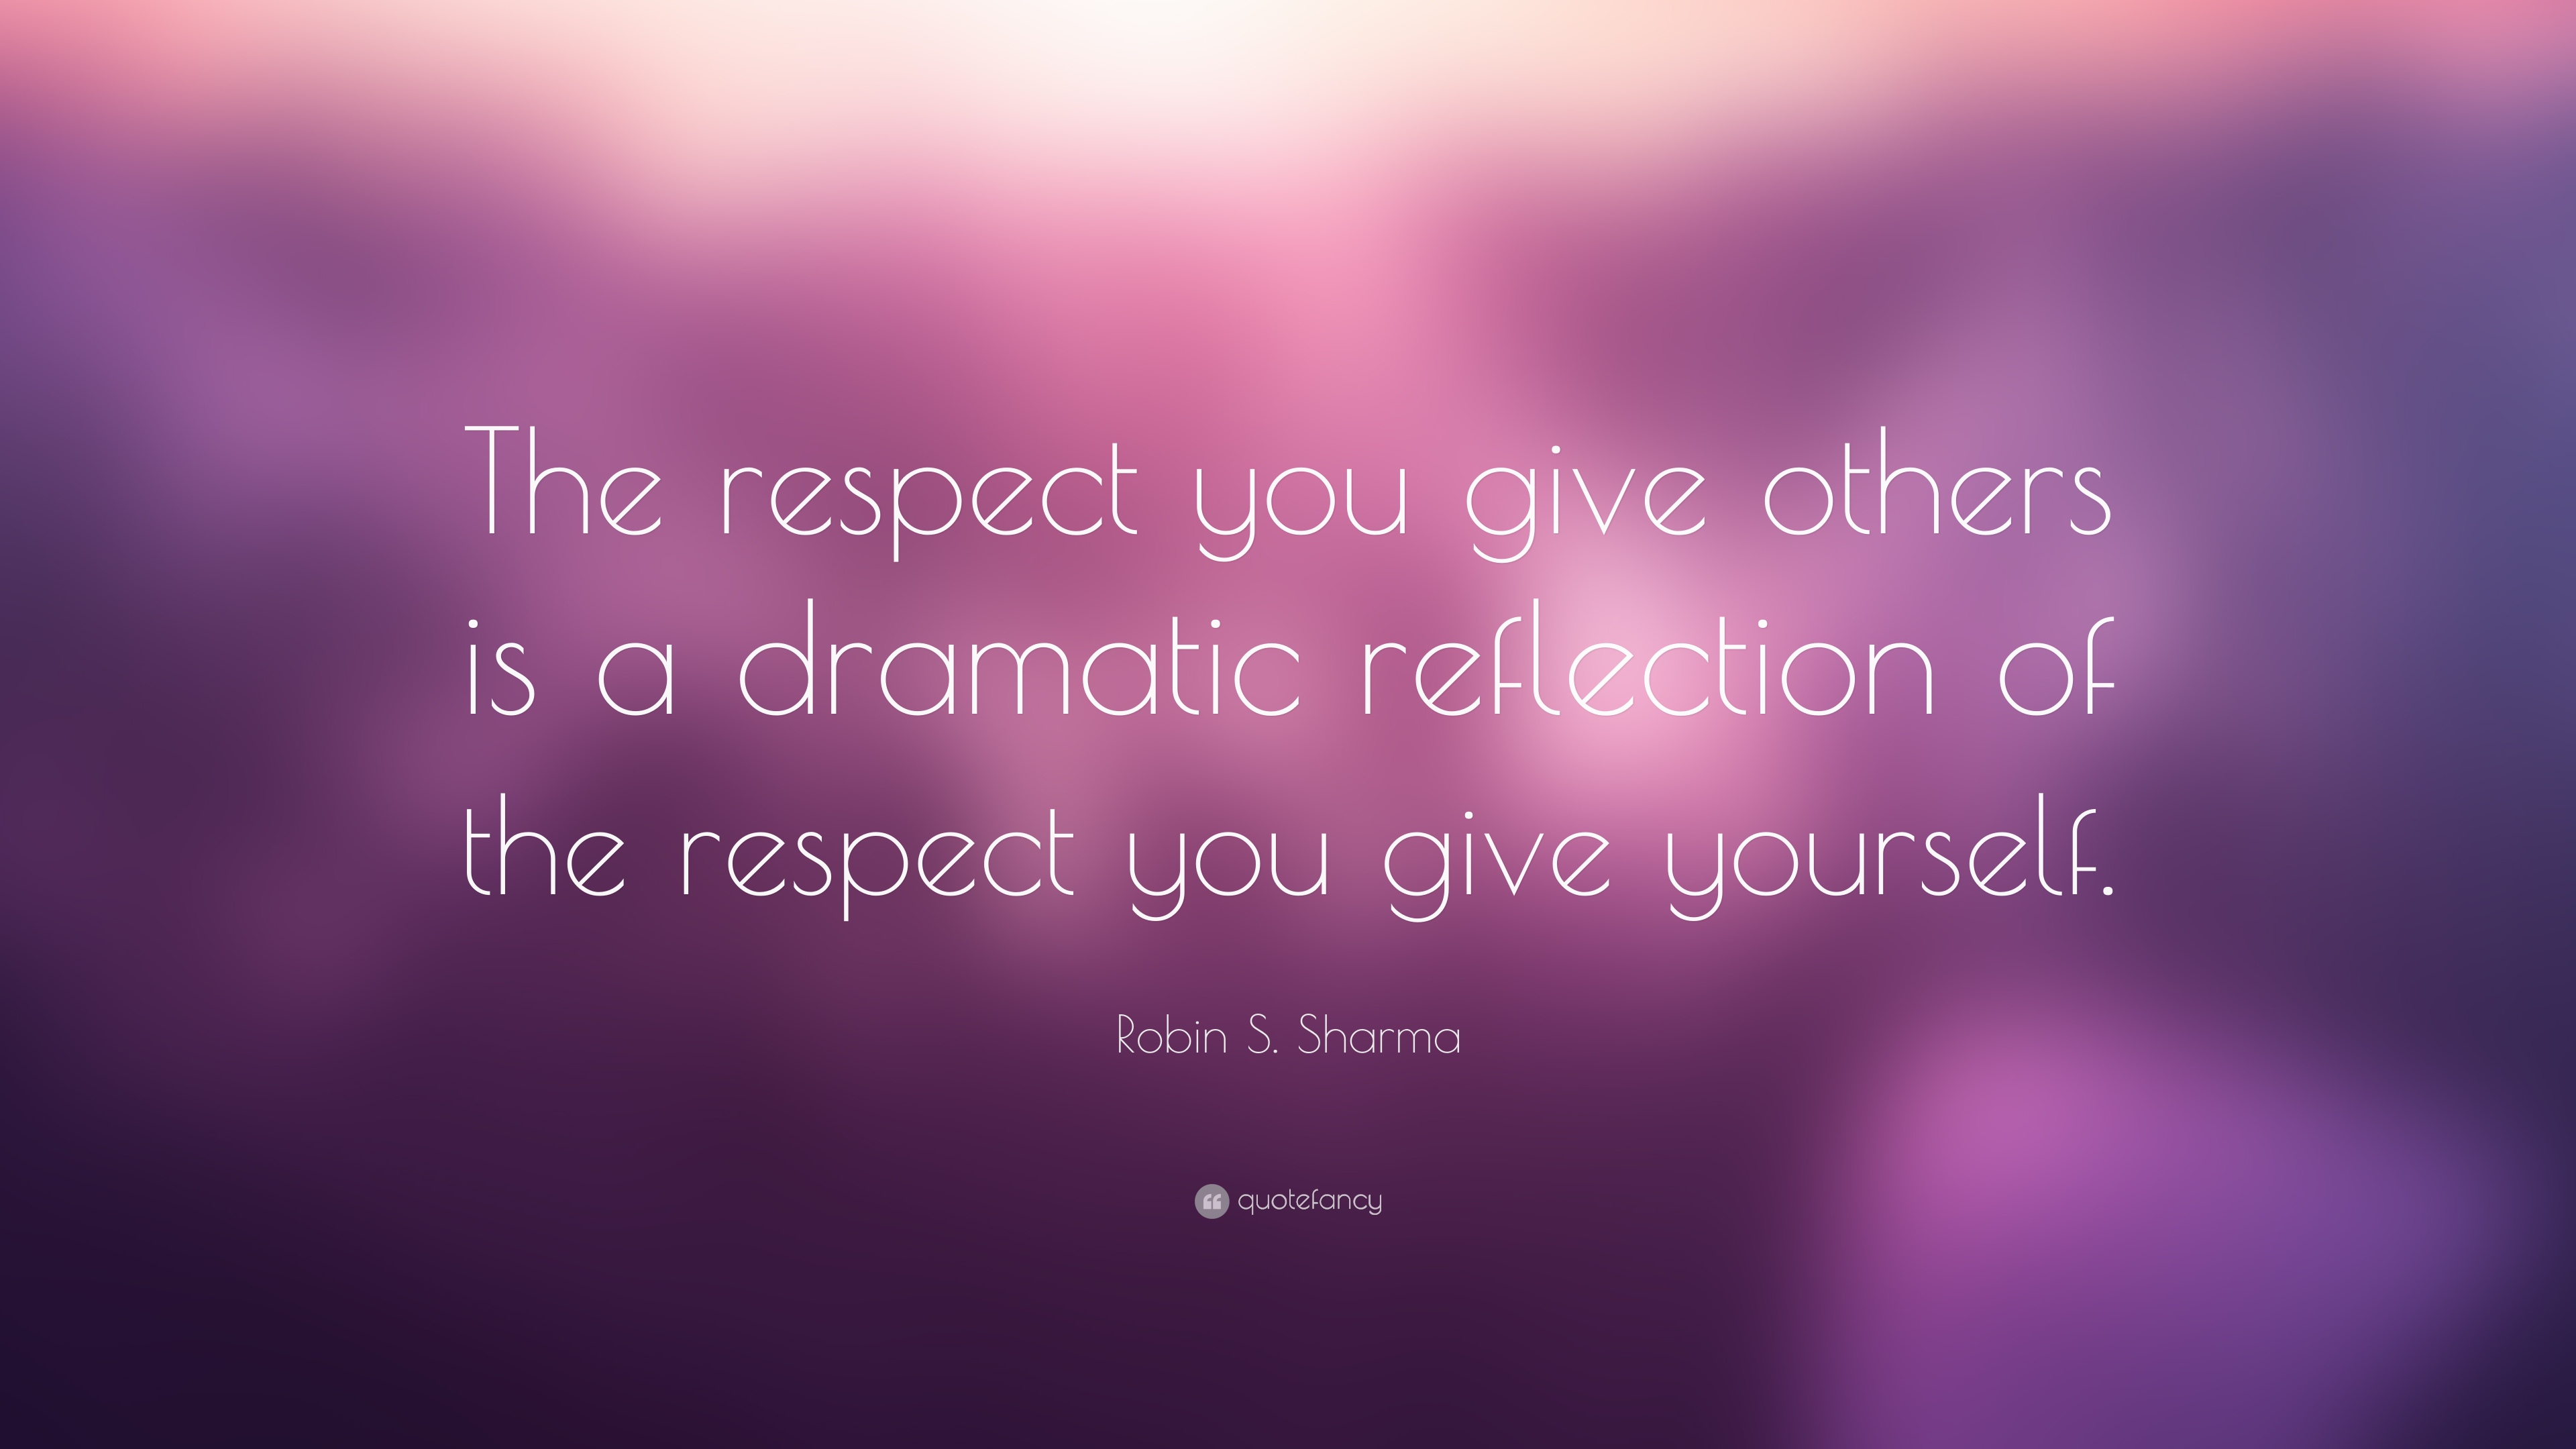 Robin S Sharma Quote The Respect You Give Others Is A Dramatic